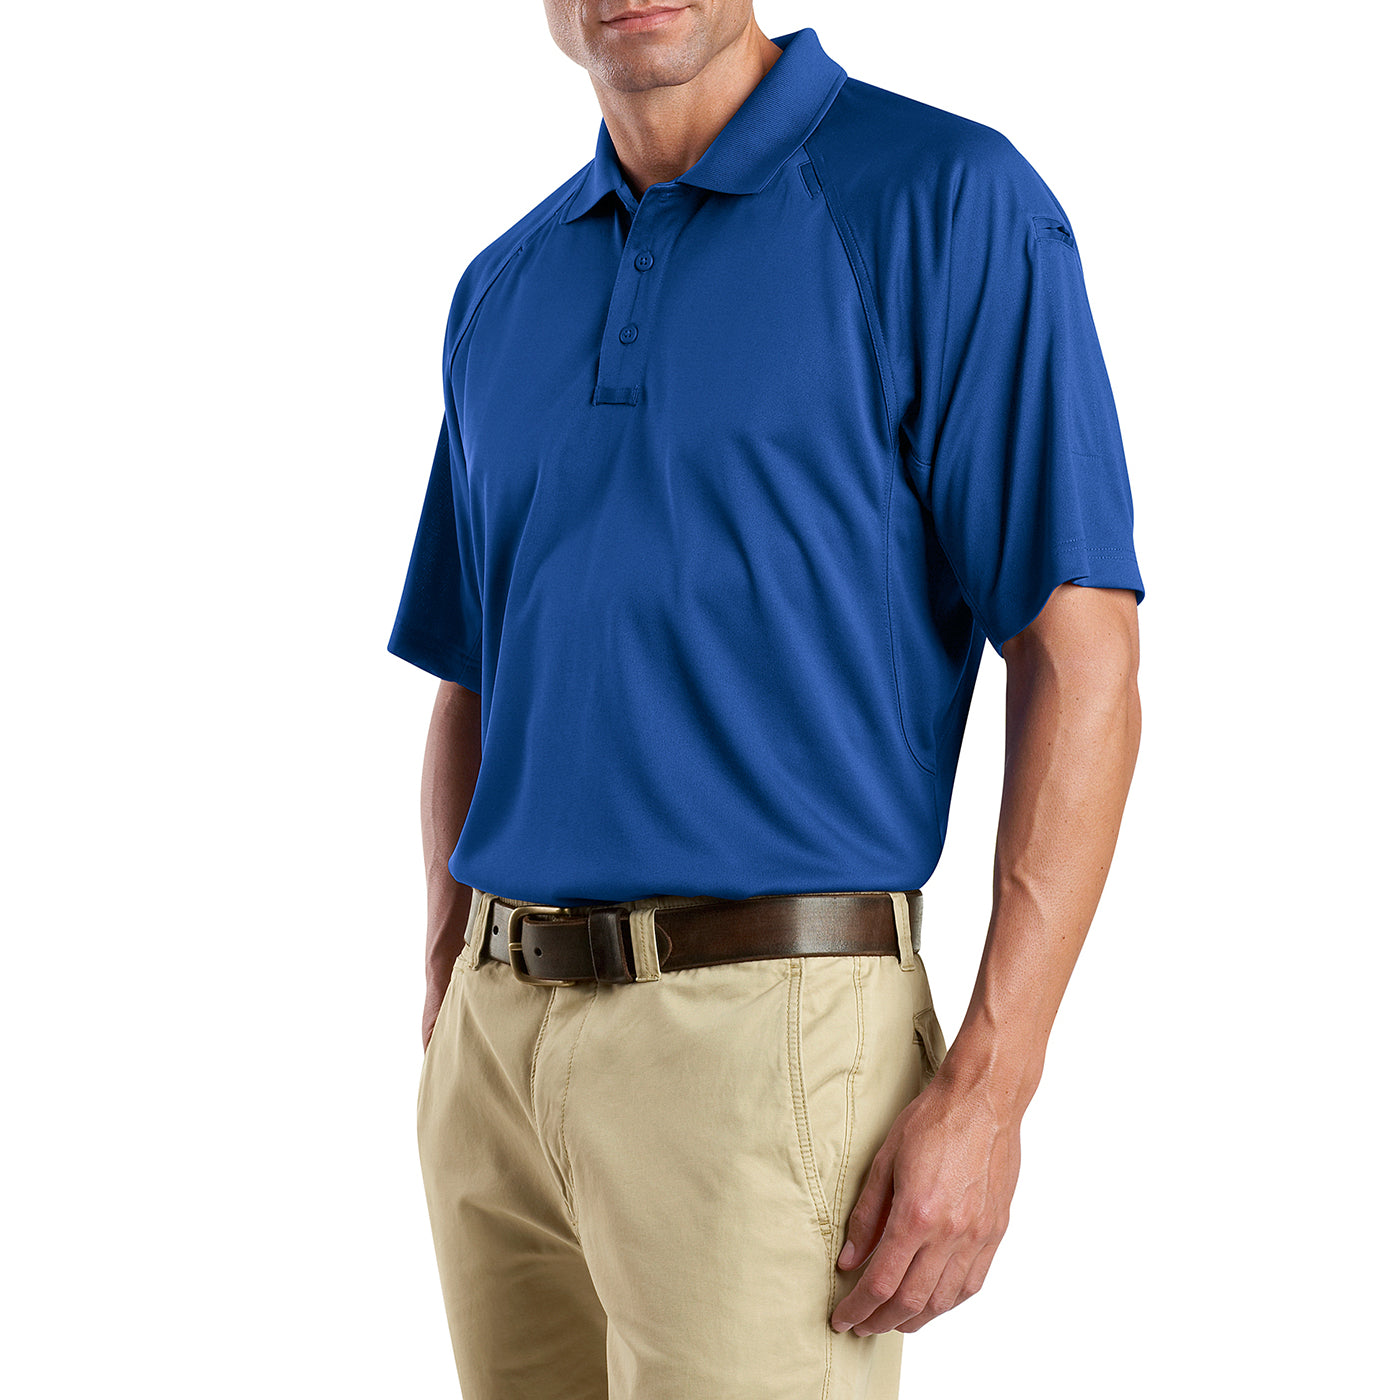 Men's Snag-Proof Tactical Polo Shirt - Royal - Side